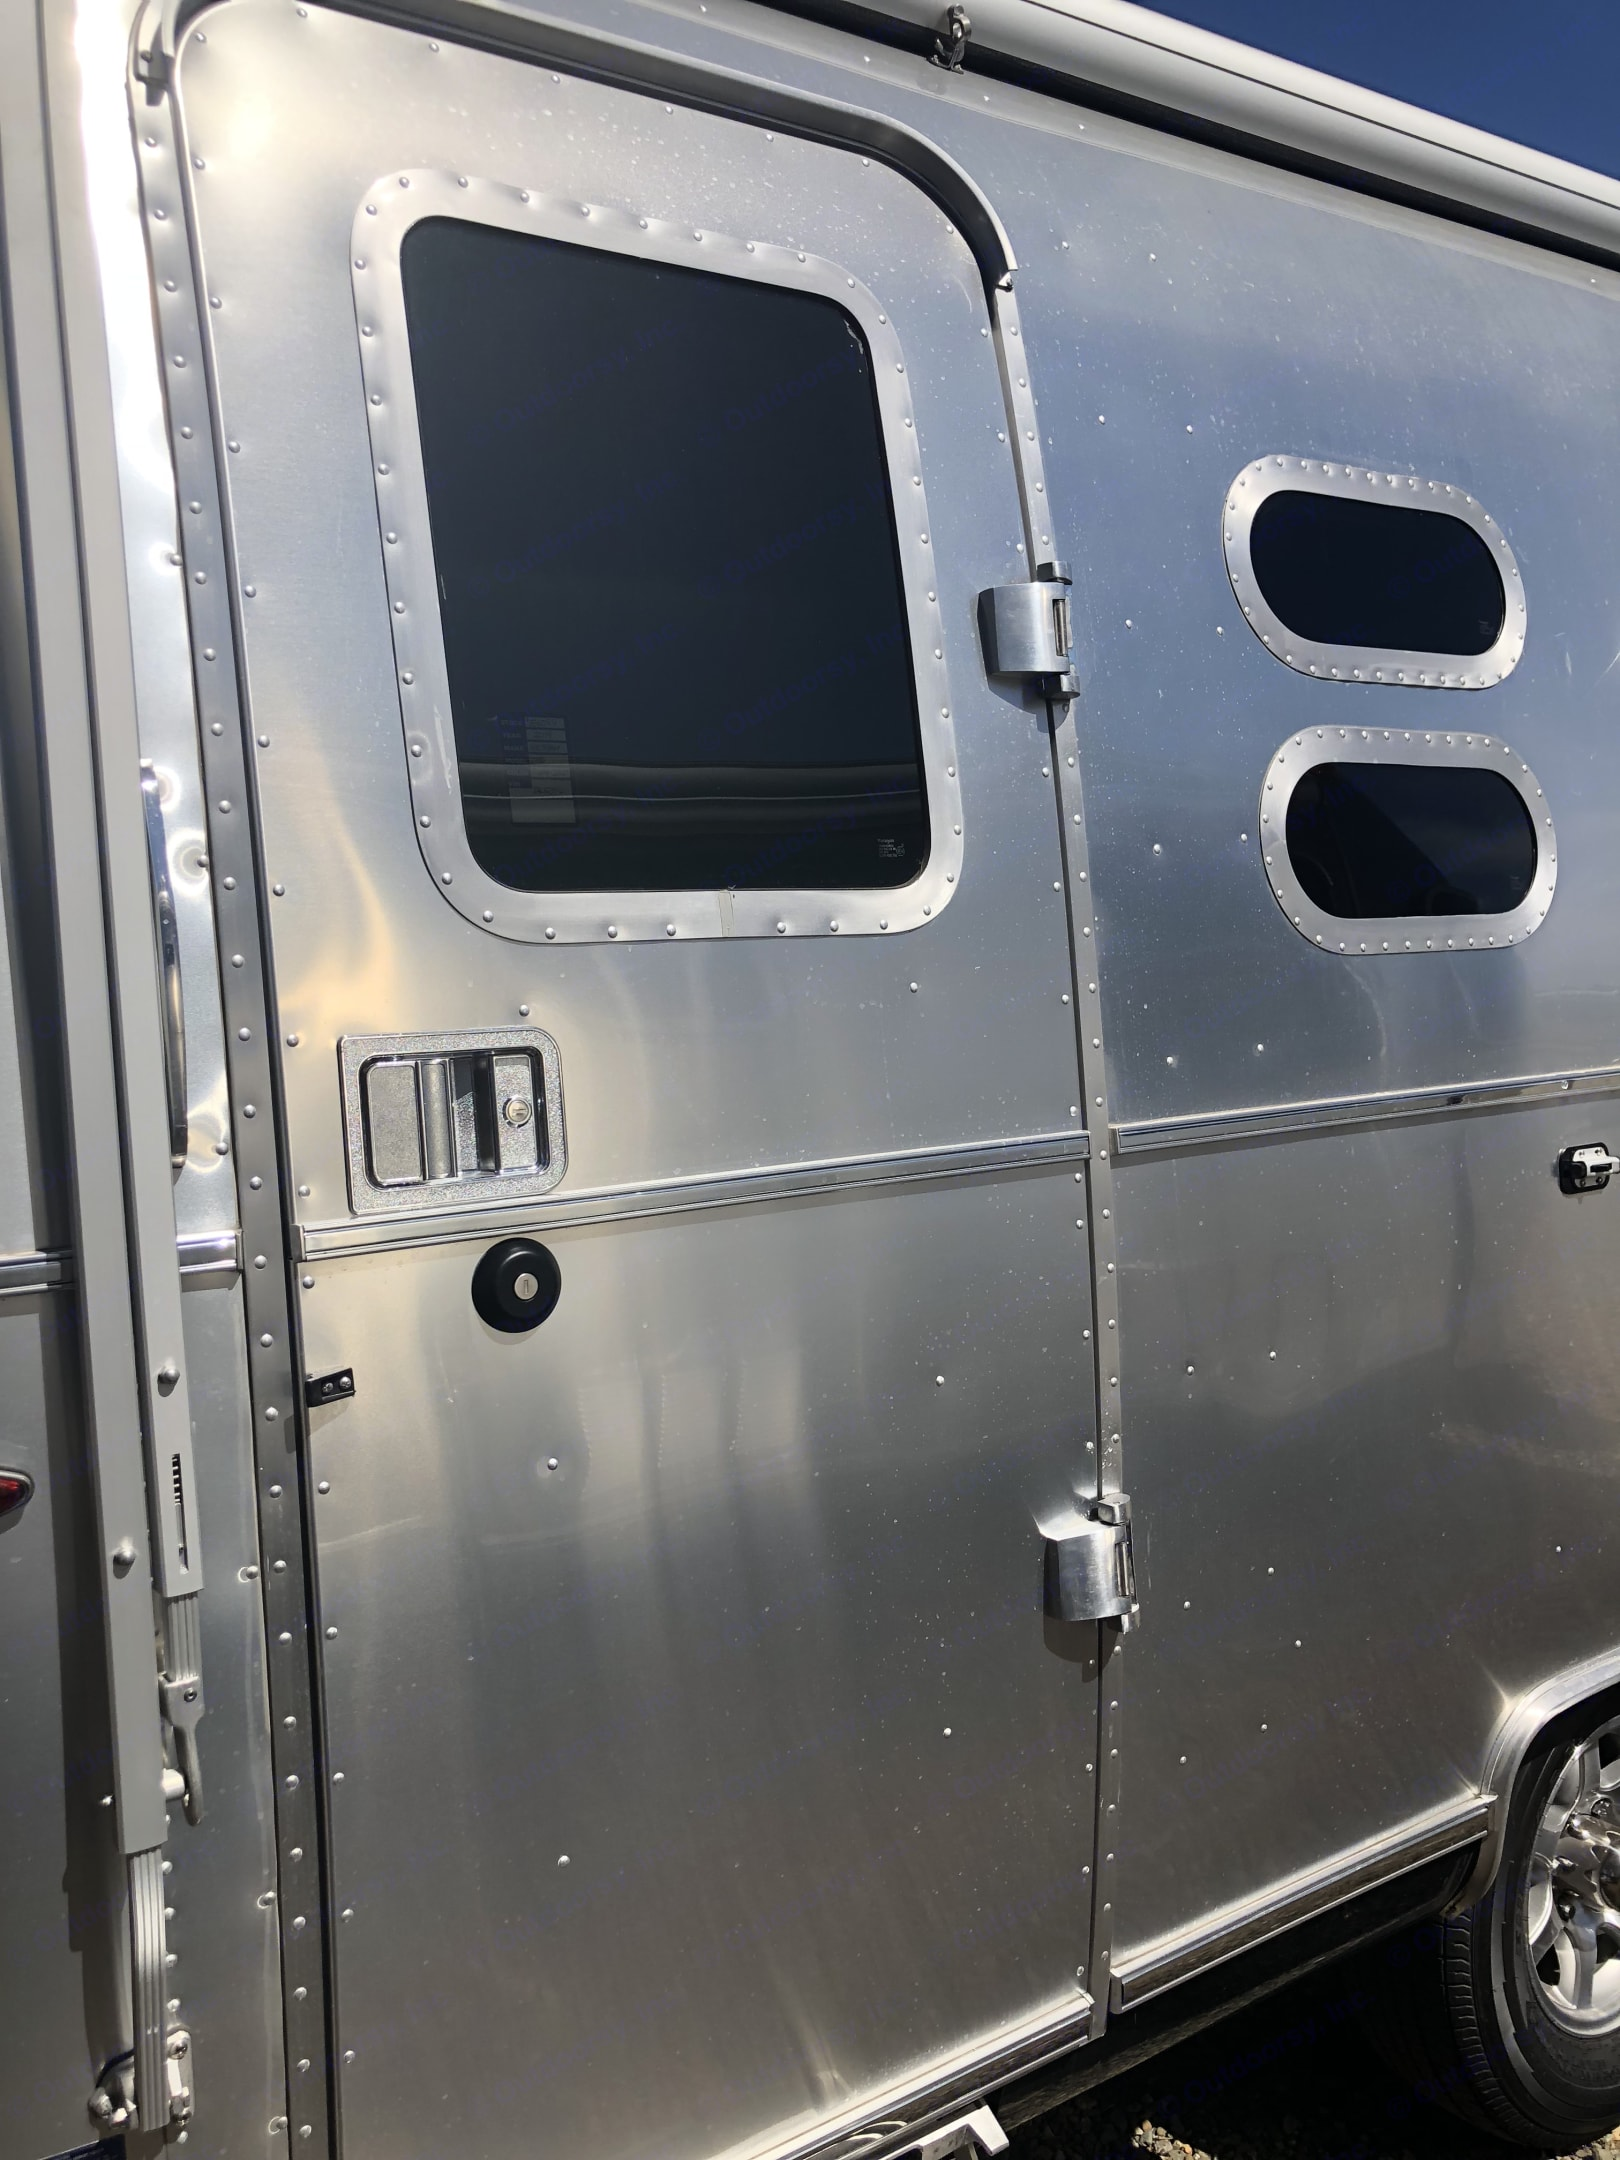 Entrance. Airstream FlyingCloud 2019